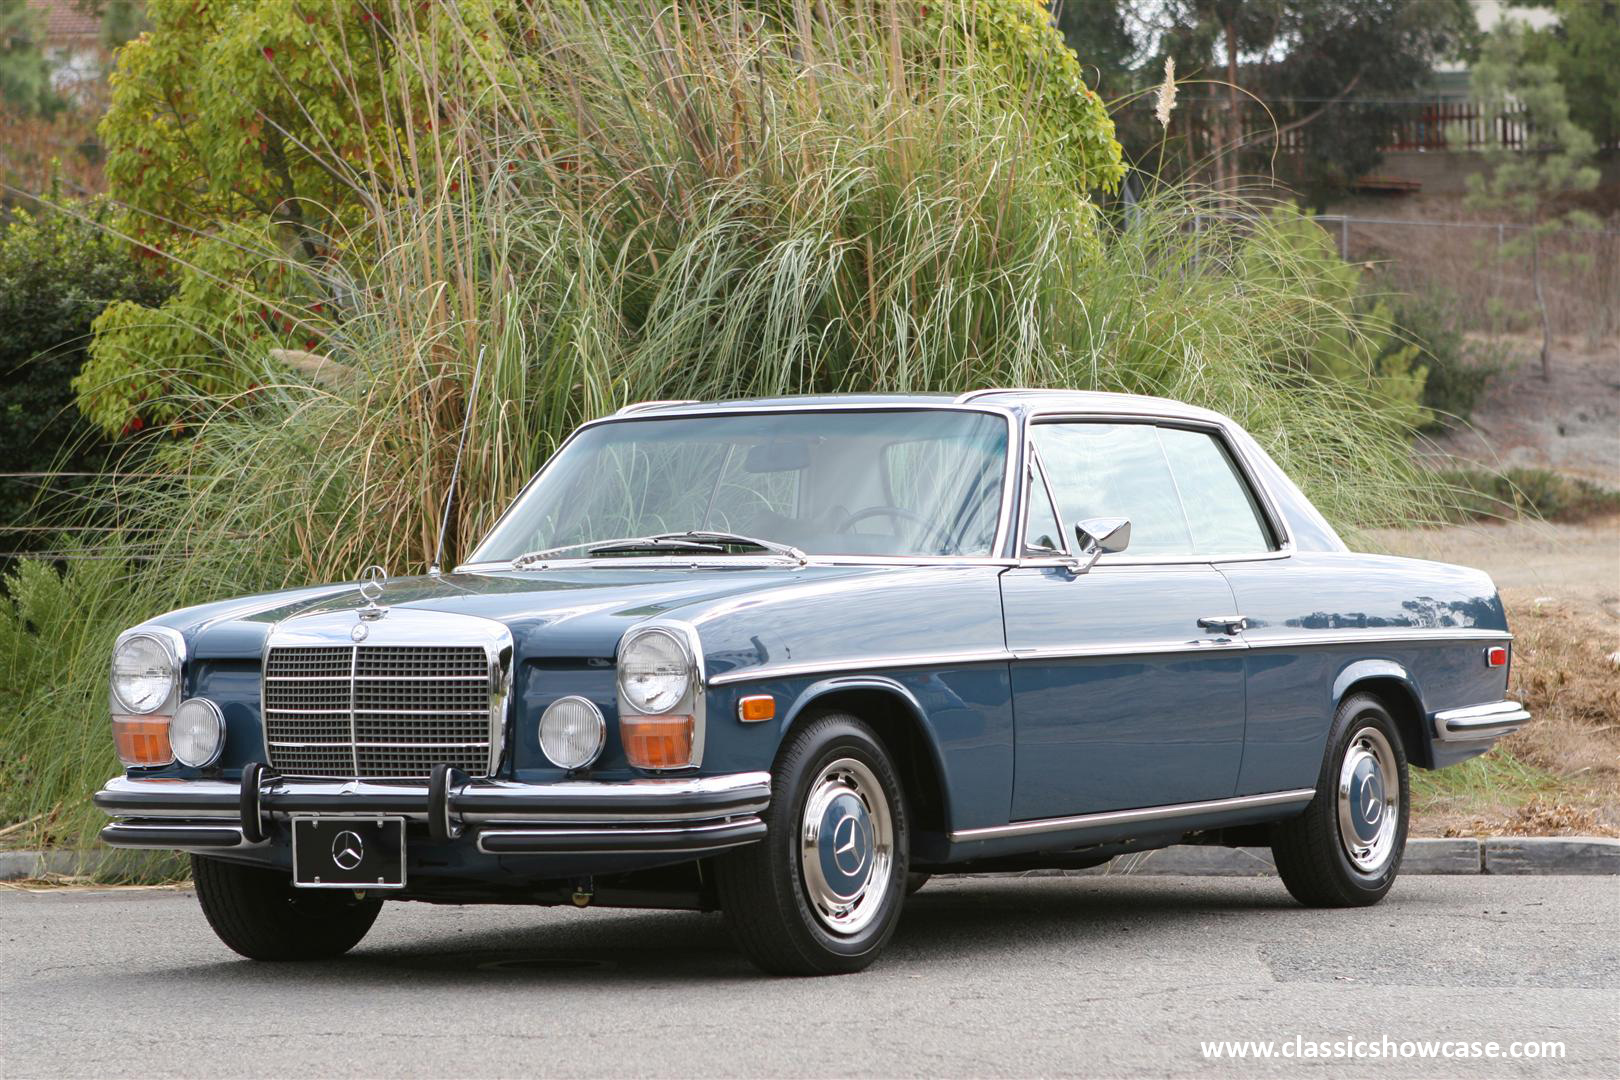 1972 mercedes benz 250c coupe by classic showcase for Mercedes benz 1972